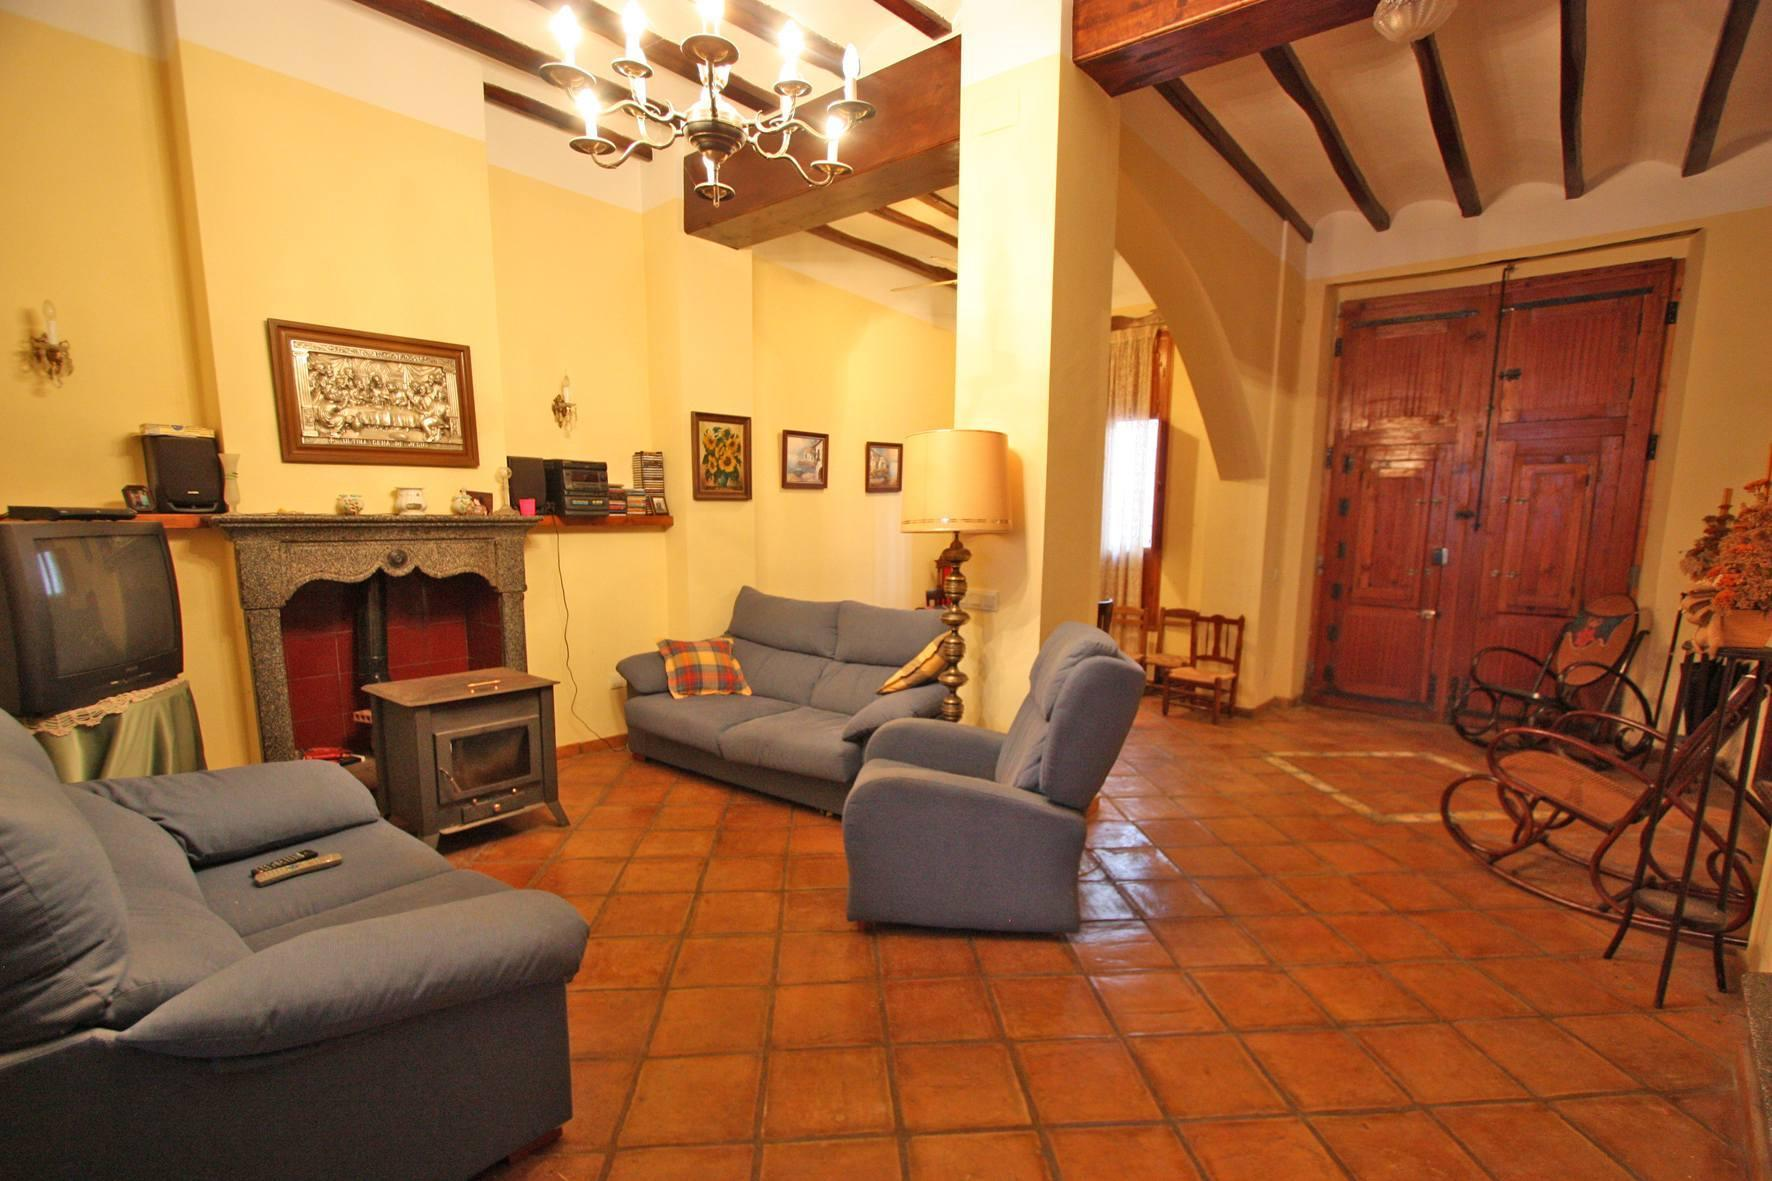 4 Bedroom Town house in Jalon